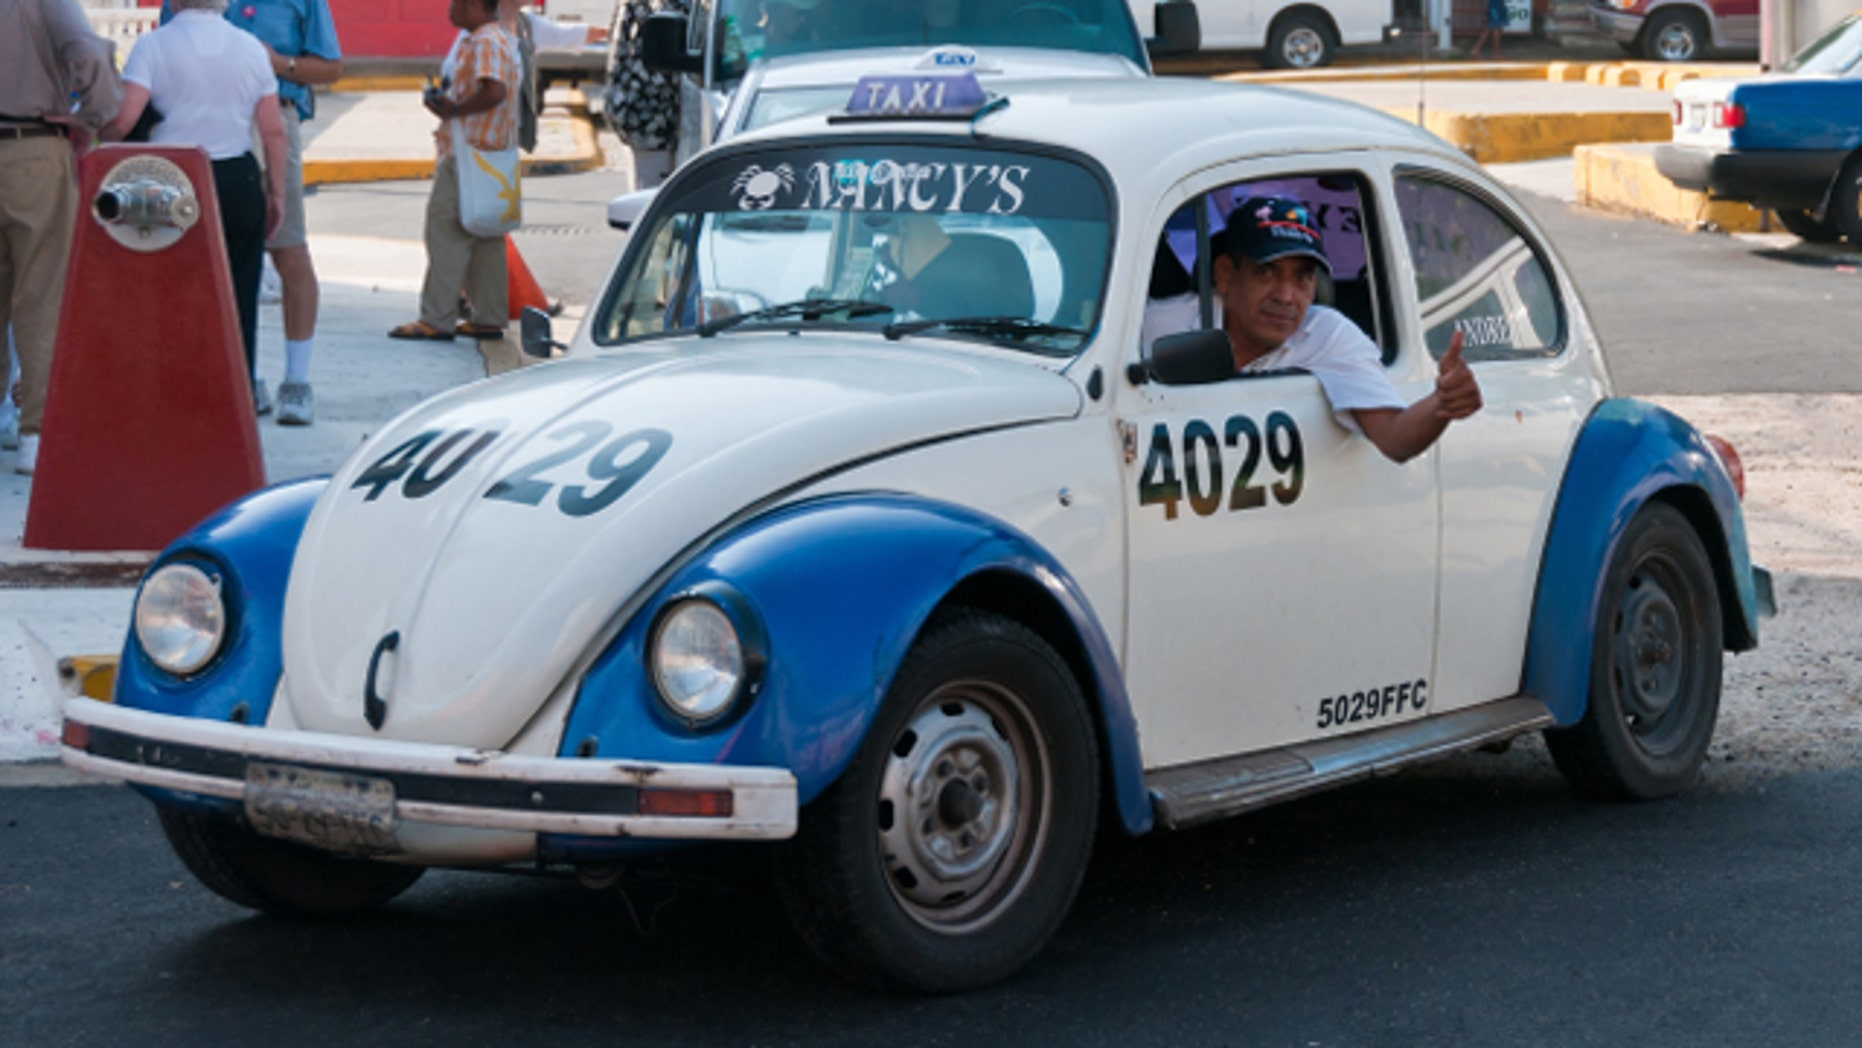 VW Beetle Taxi on the streets of Acapulco, Mexico